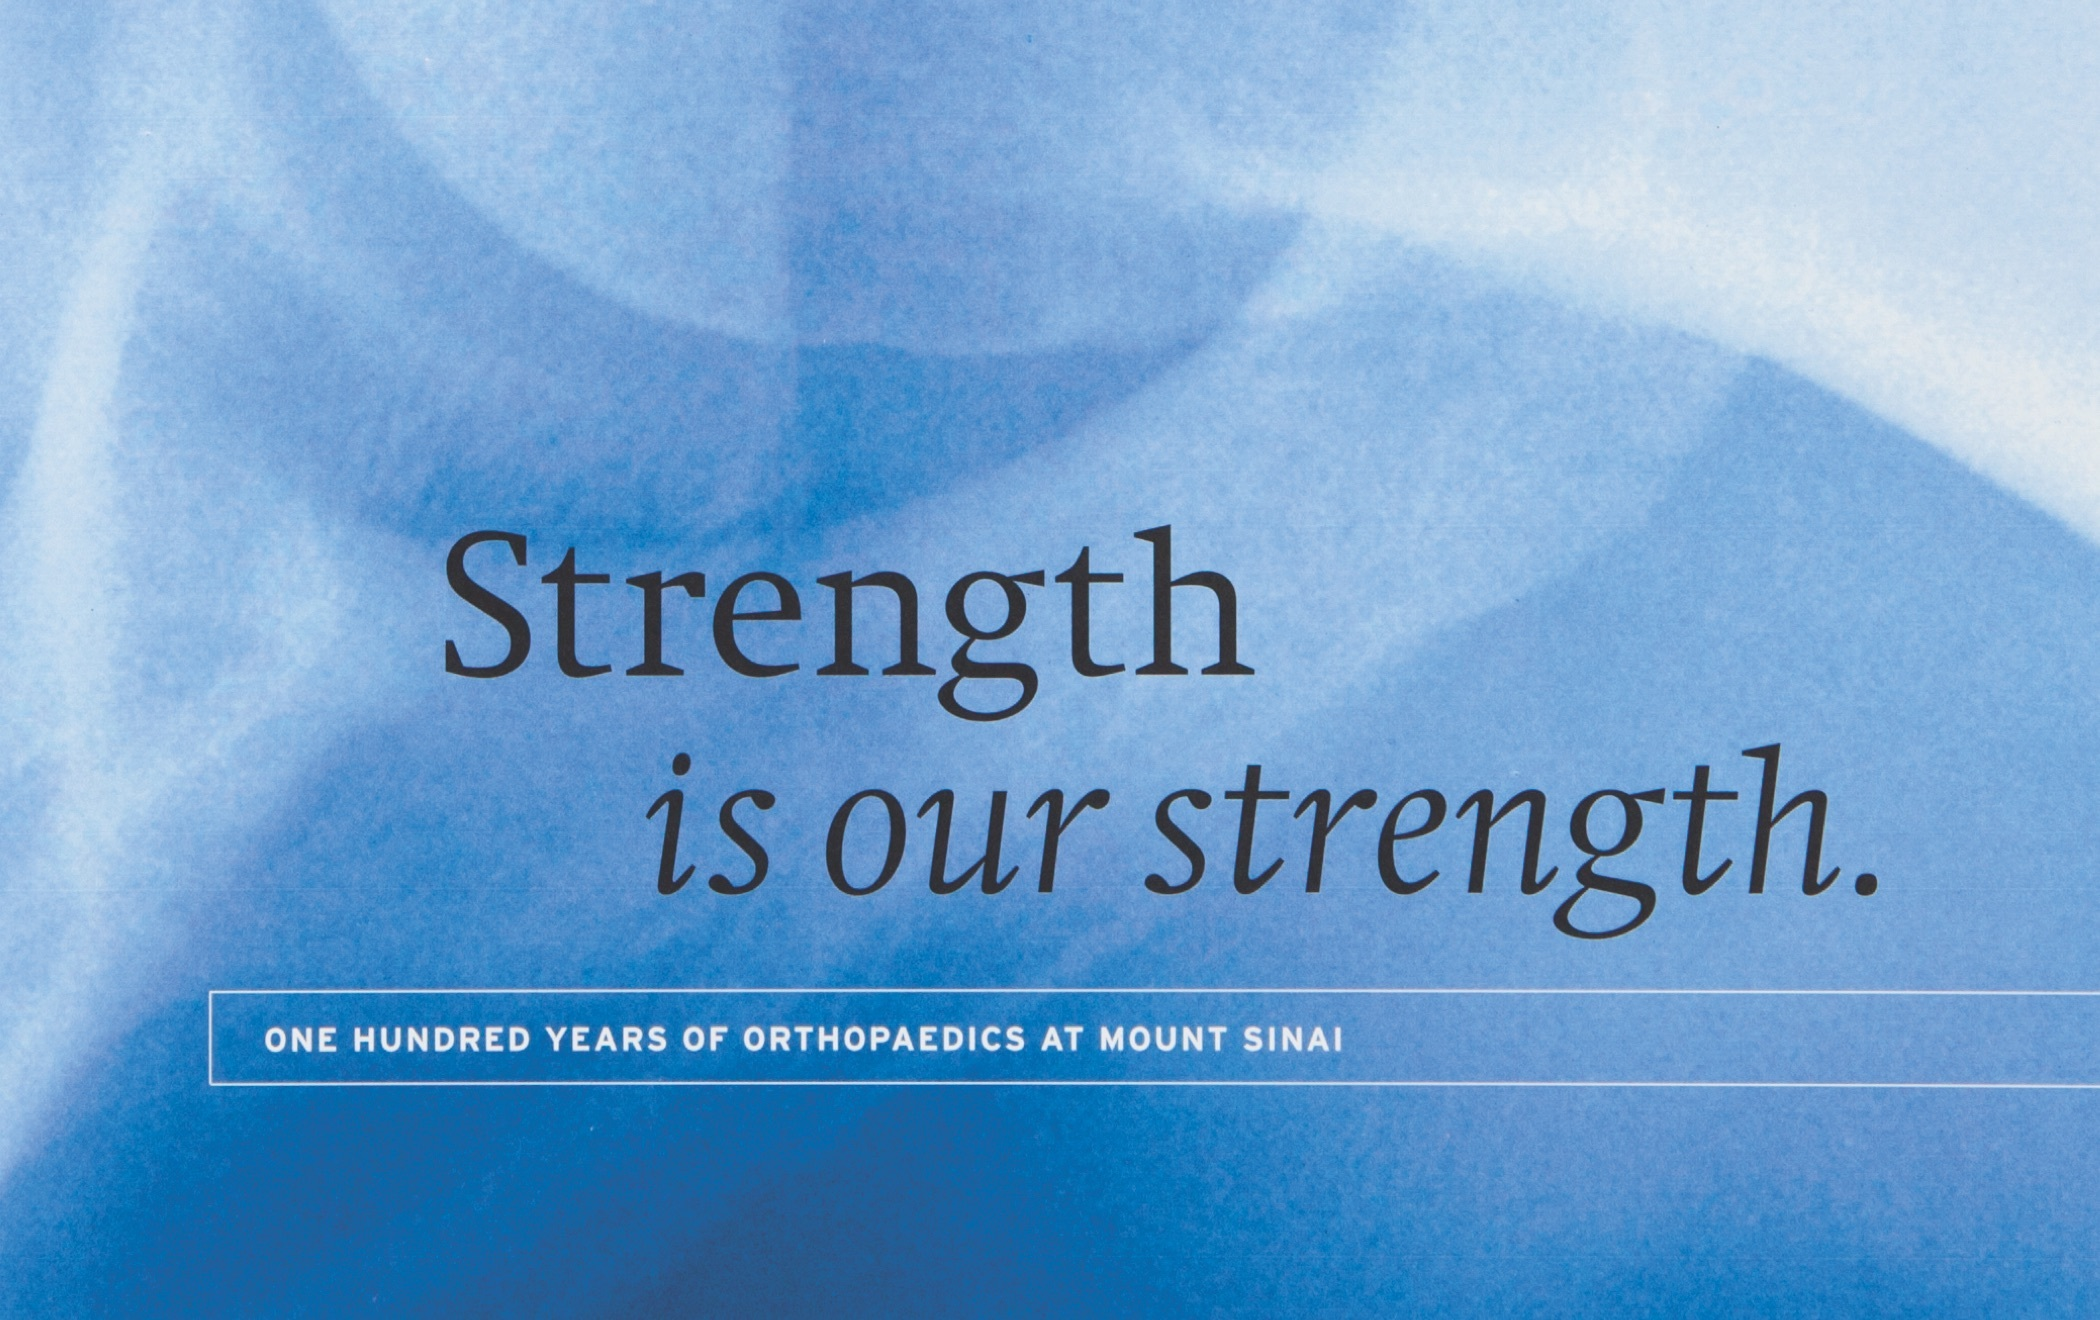 Detail from the cover the the Mount Sinai Orthopaedics Annual Report with the text, Strength is our strength: one hundred years of orthopaedics at Mount Sinai.